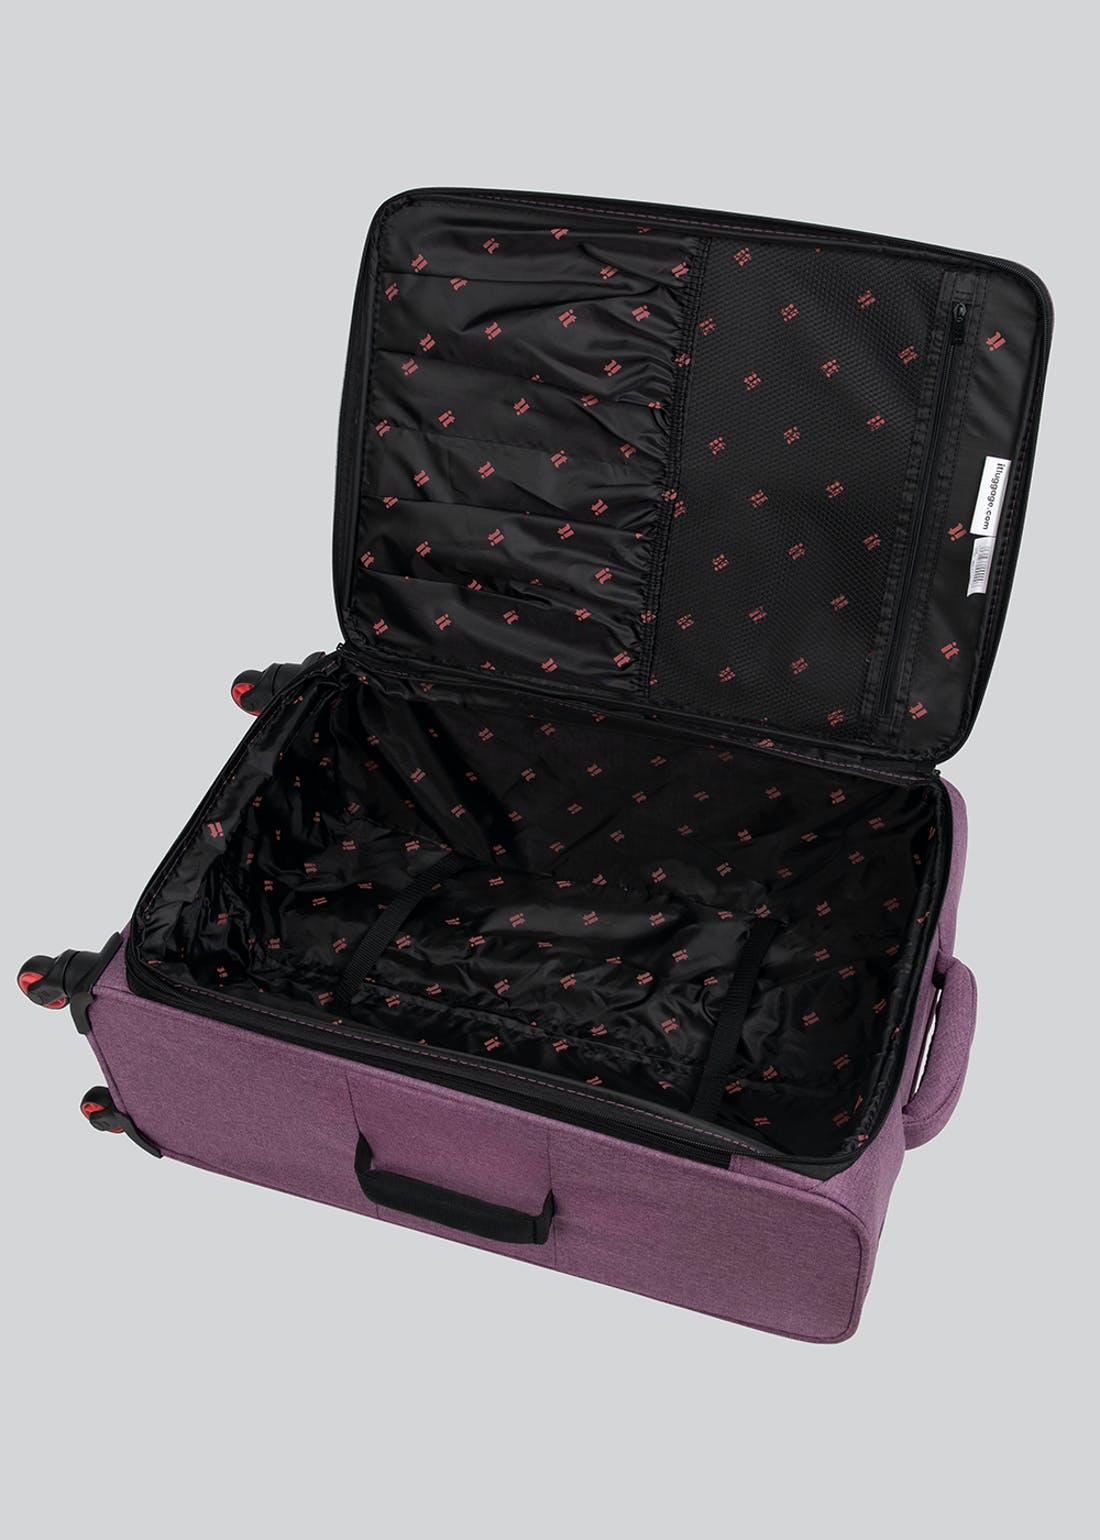 IT Luggage Exceeder Soft Suitcase